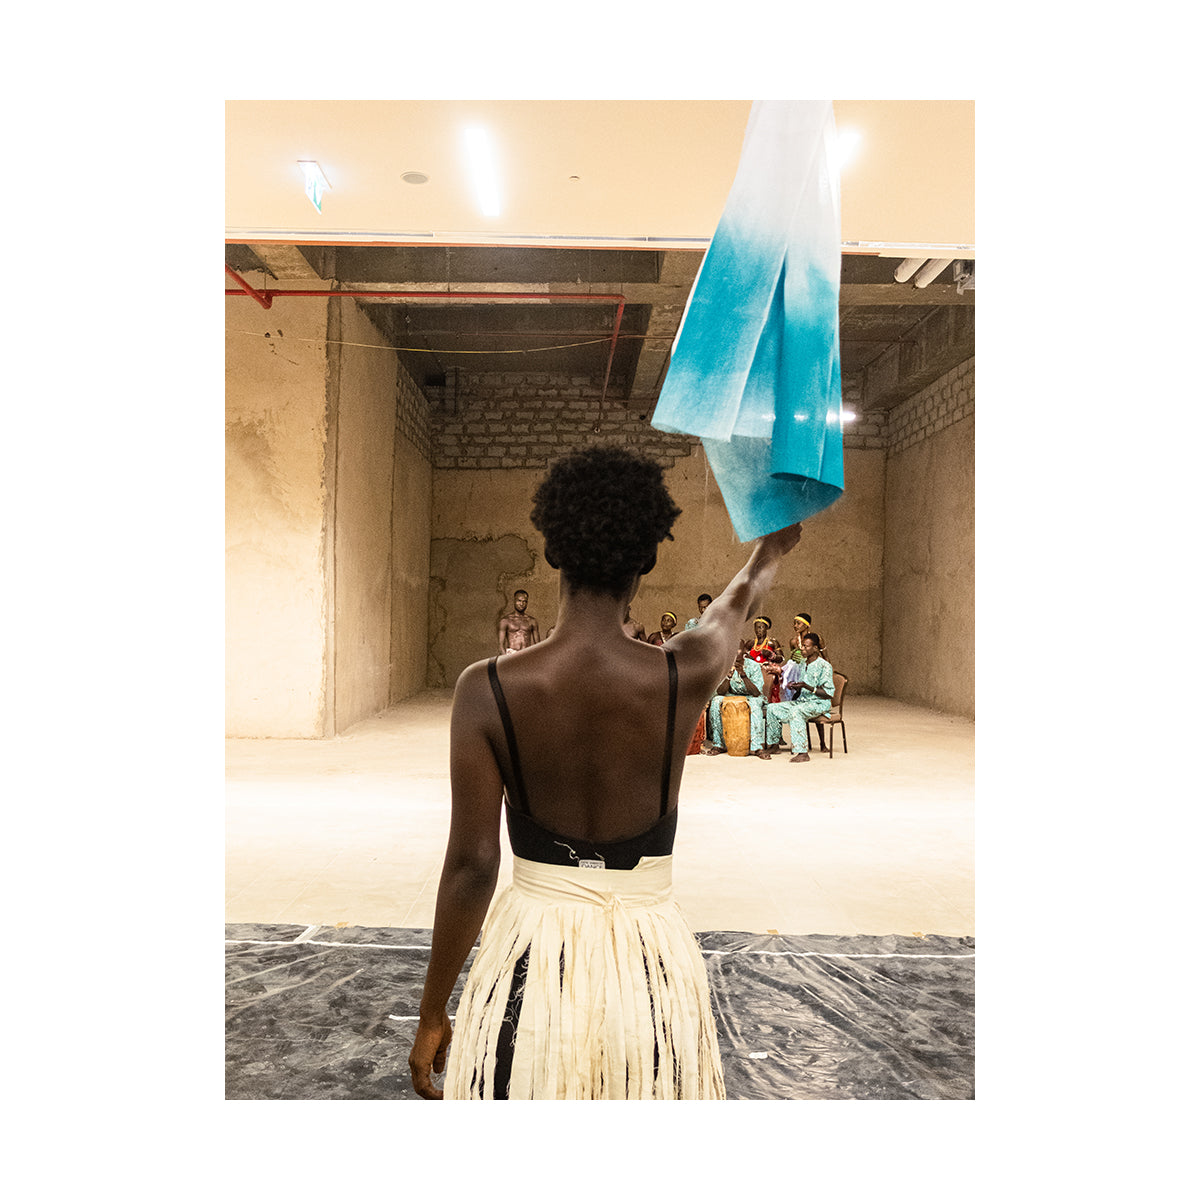 """My hair is woolly, my back is strong"" by Jessica Sarkodie - photography print"